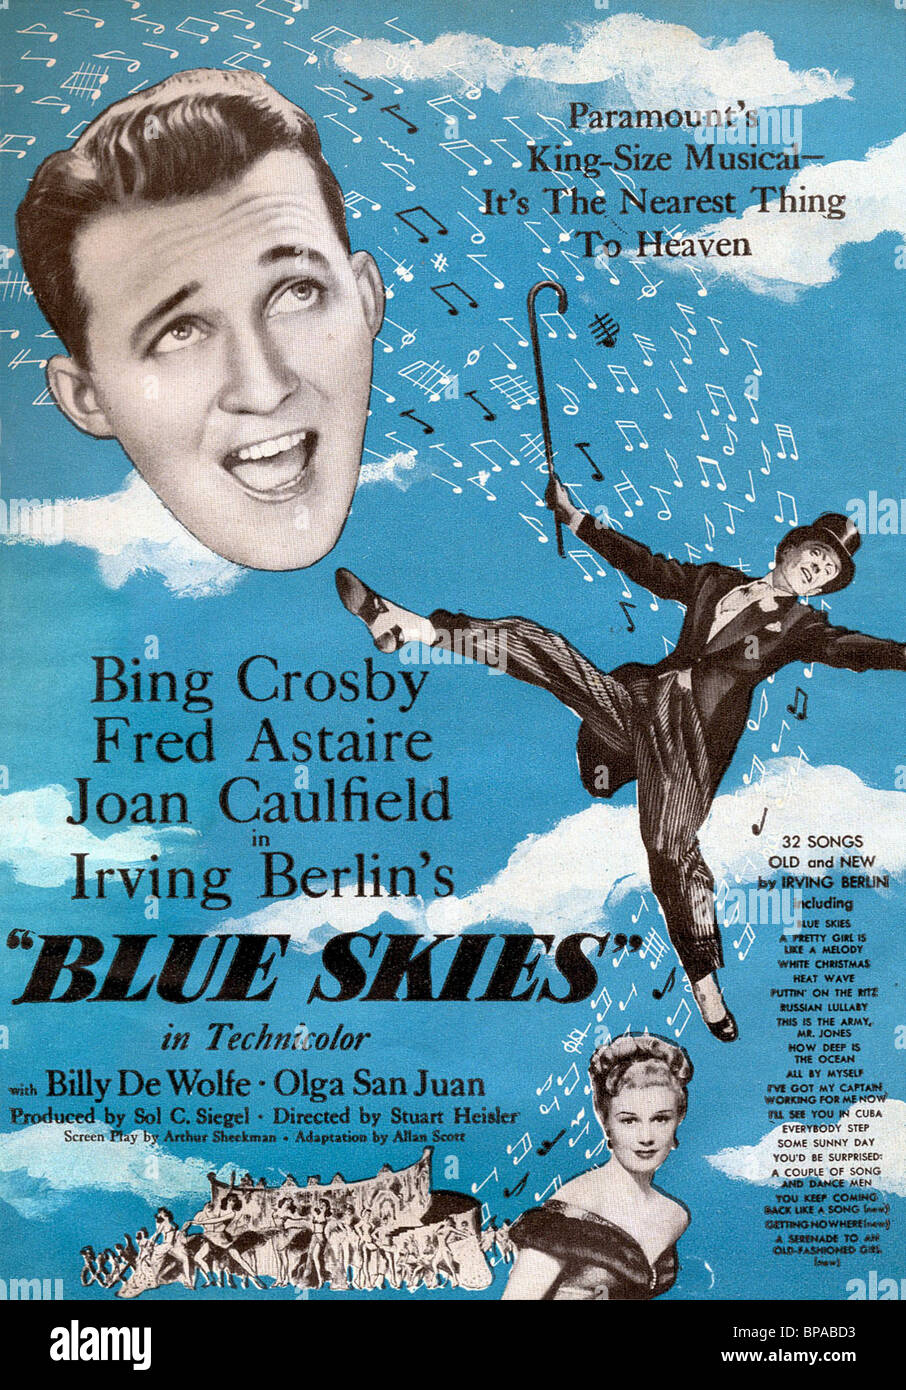 Bing crosby fred astaire joan caulfield film poster blue skies 1946 stock